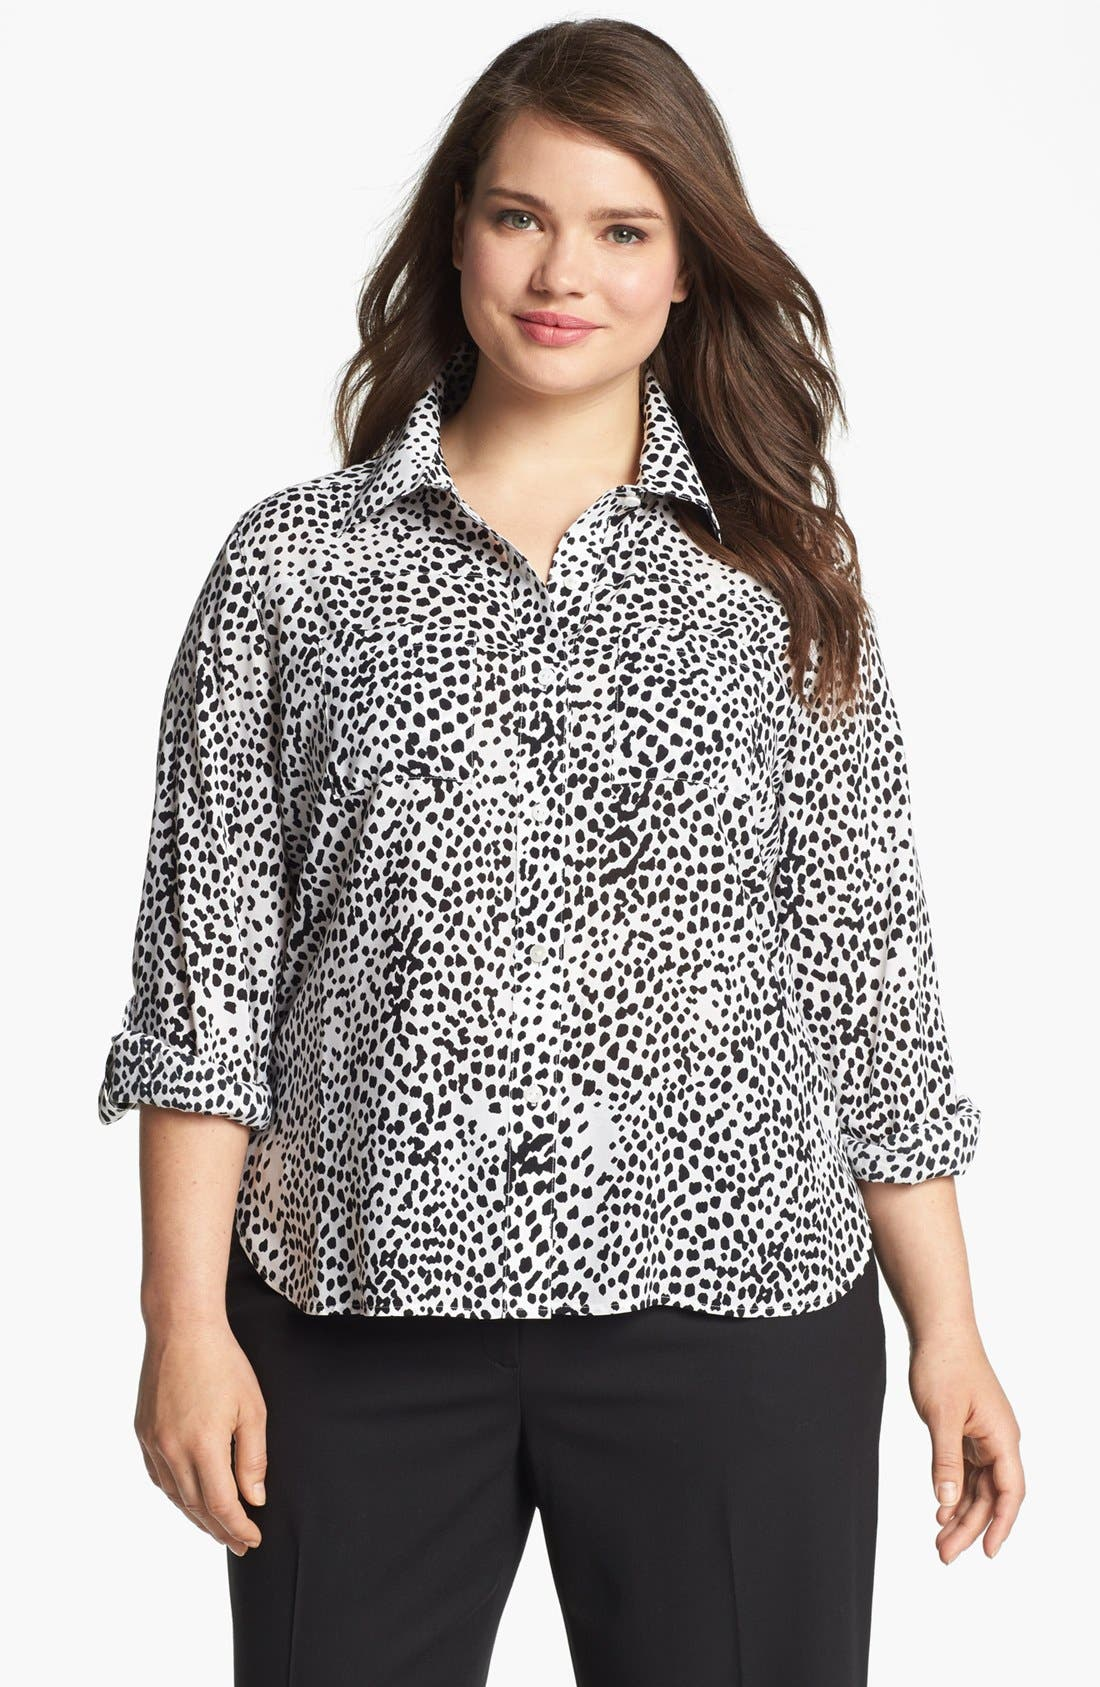 Alternate Image 1 Selected - Foxcroft 'Wild Dot' Print Shaped Shirt (Plus Size)